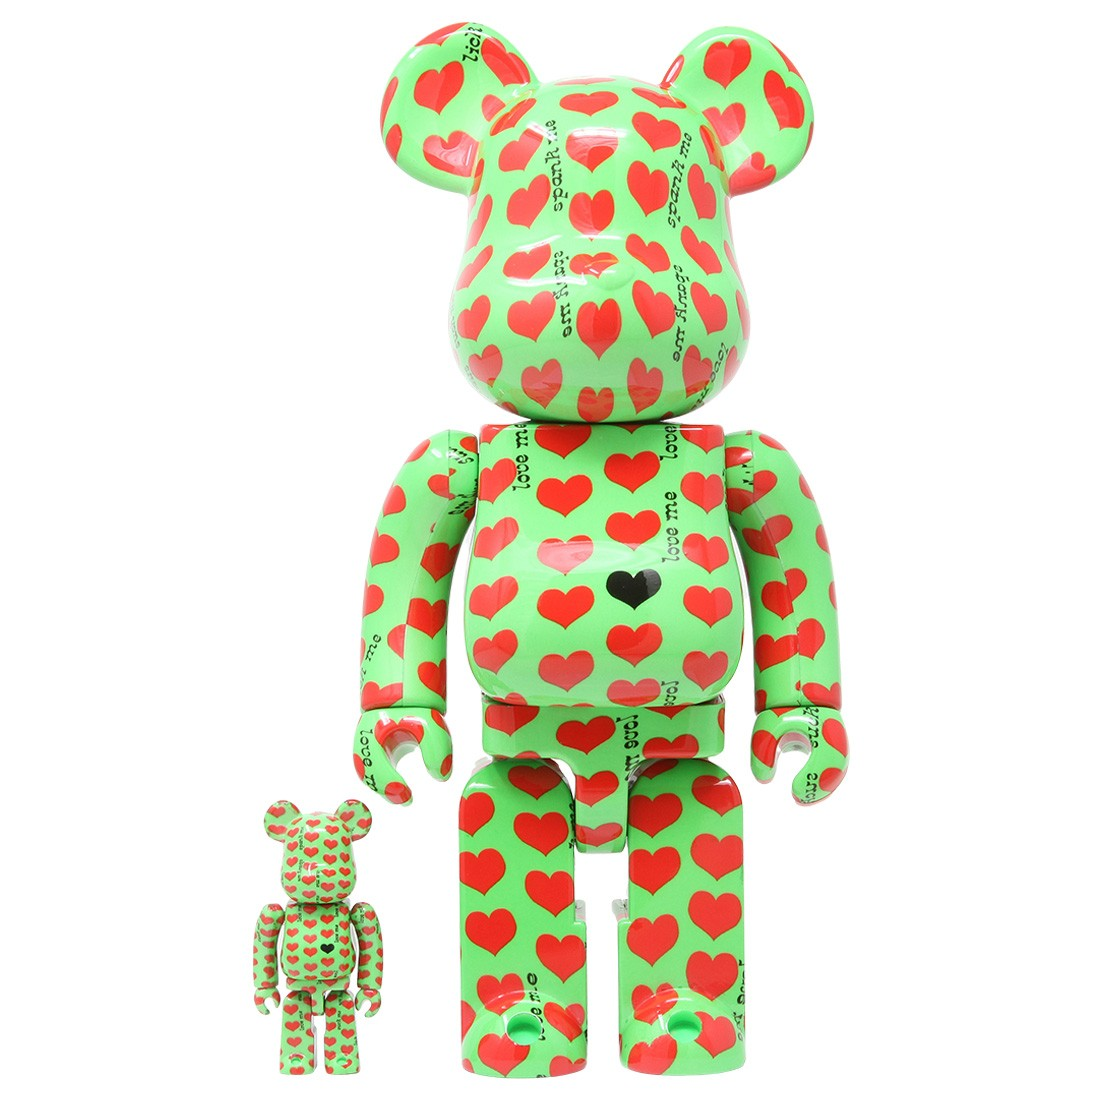 Medicom Green Heart 100% 400% Bearbrick Figure Set (green)